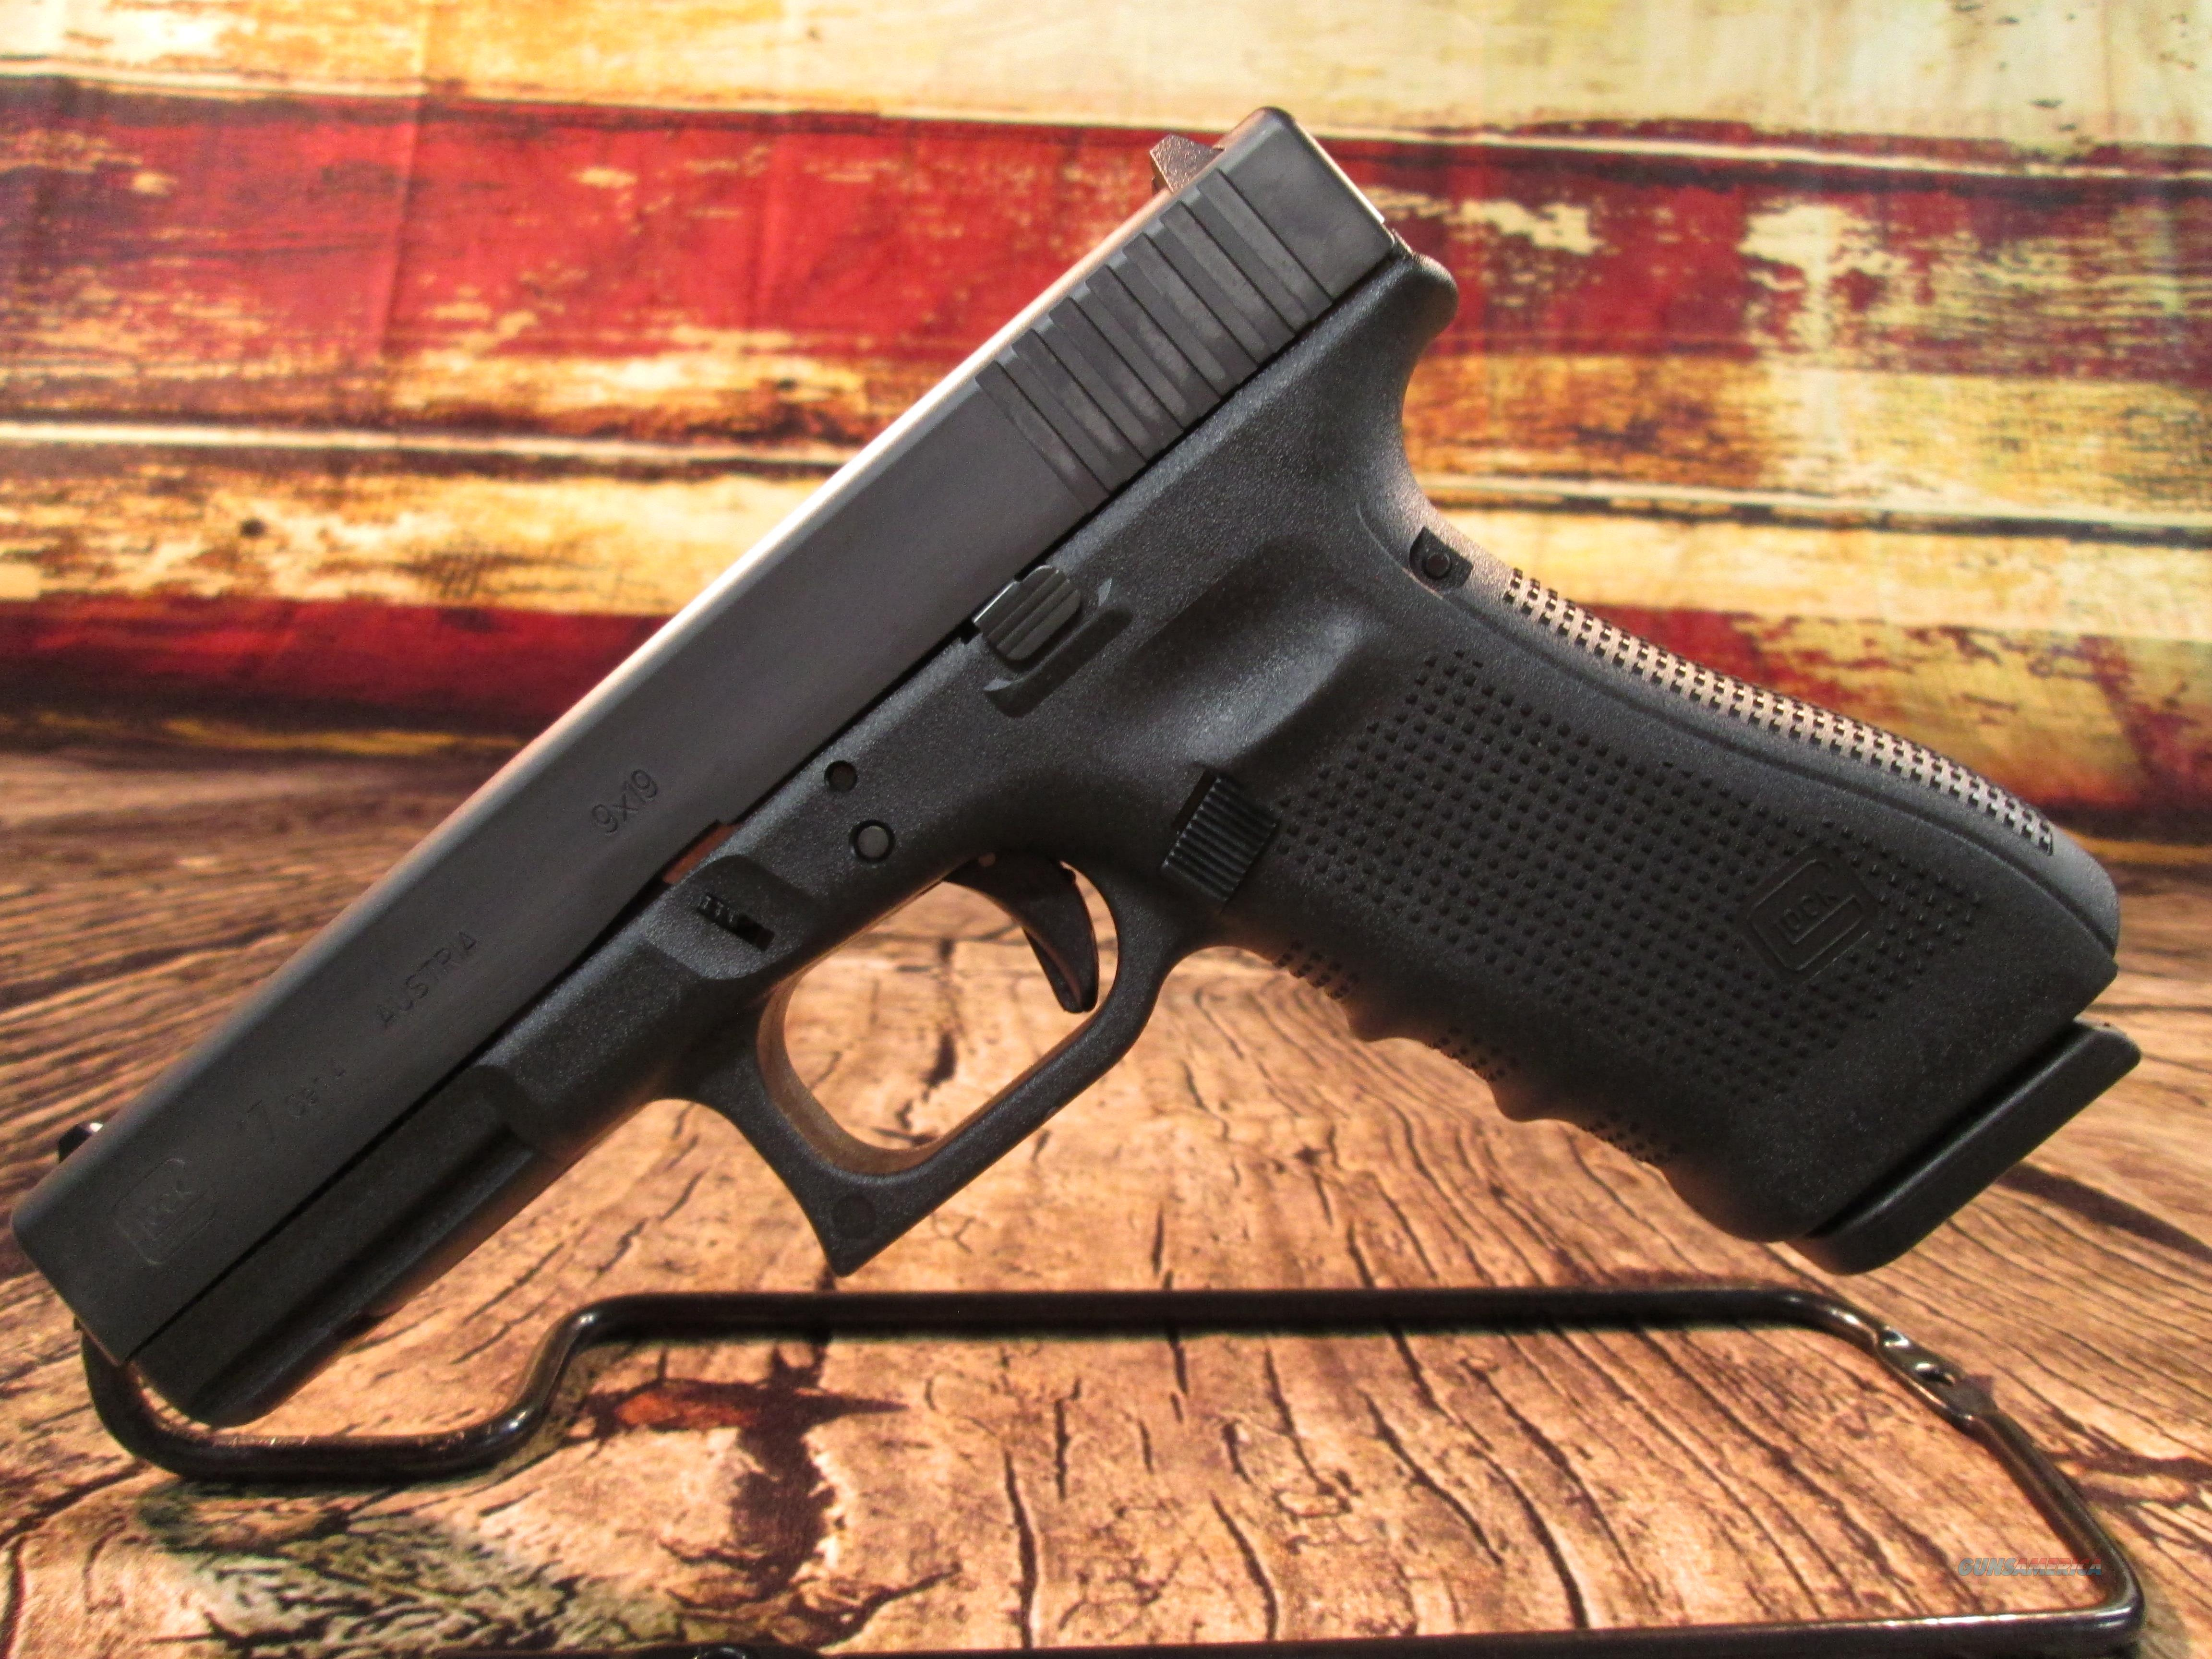 GLOCK MODEL 17 GENERATION 4 9MM WITH 3 SEVENTEEN ROUND MAGAZINES NEW   (PG1750203)  Guns > Pistols > Glock Pistols > 17